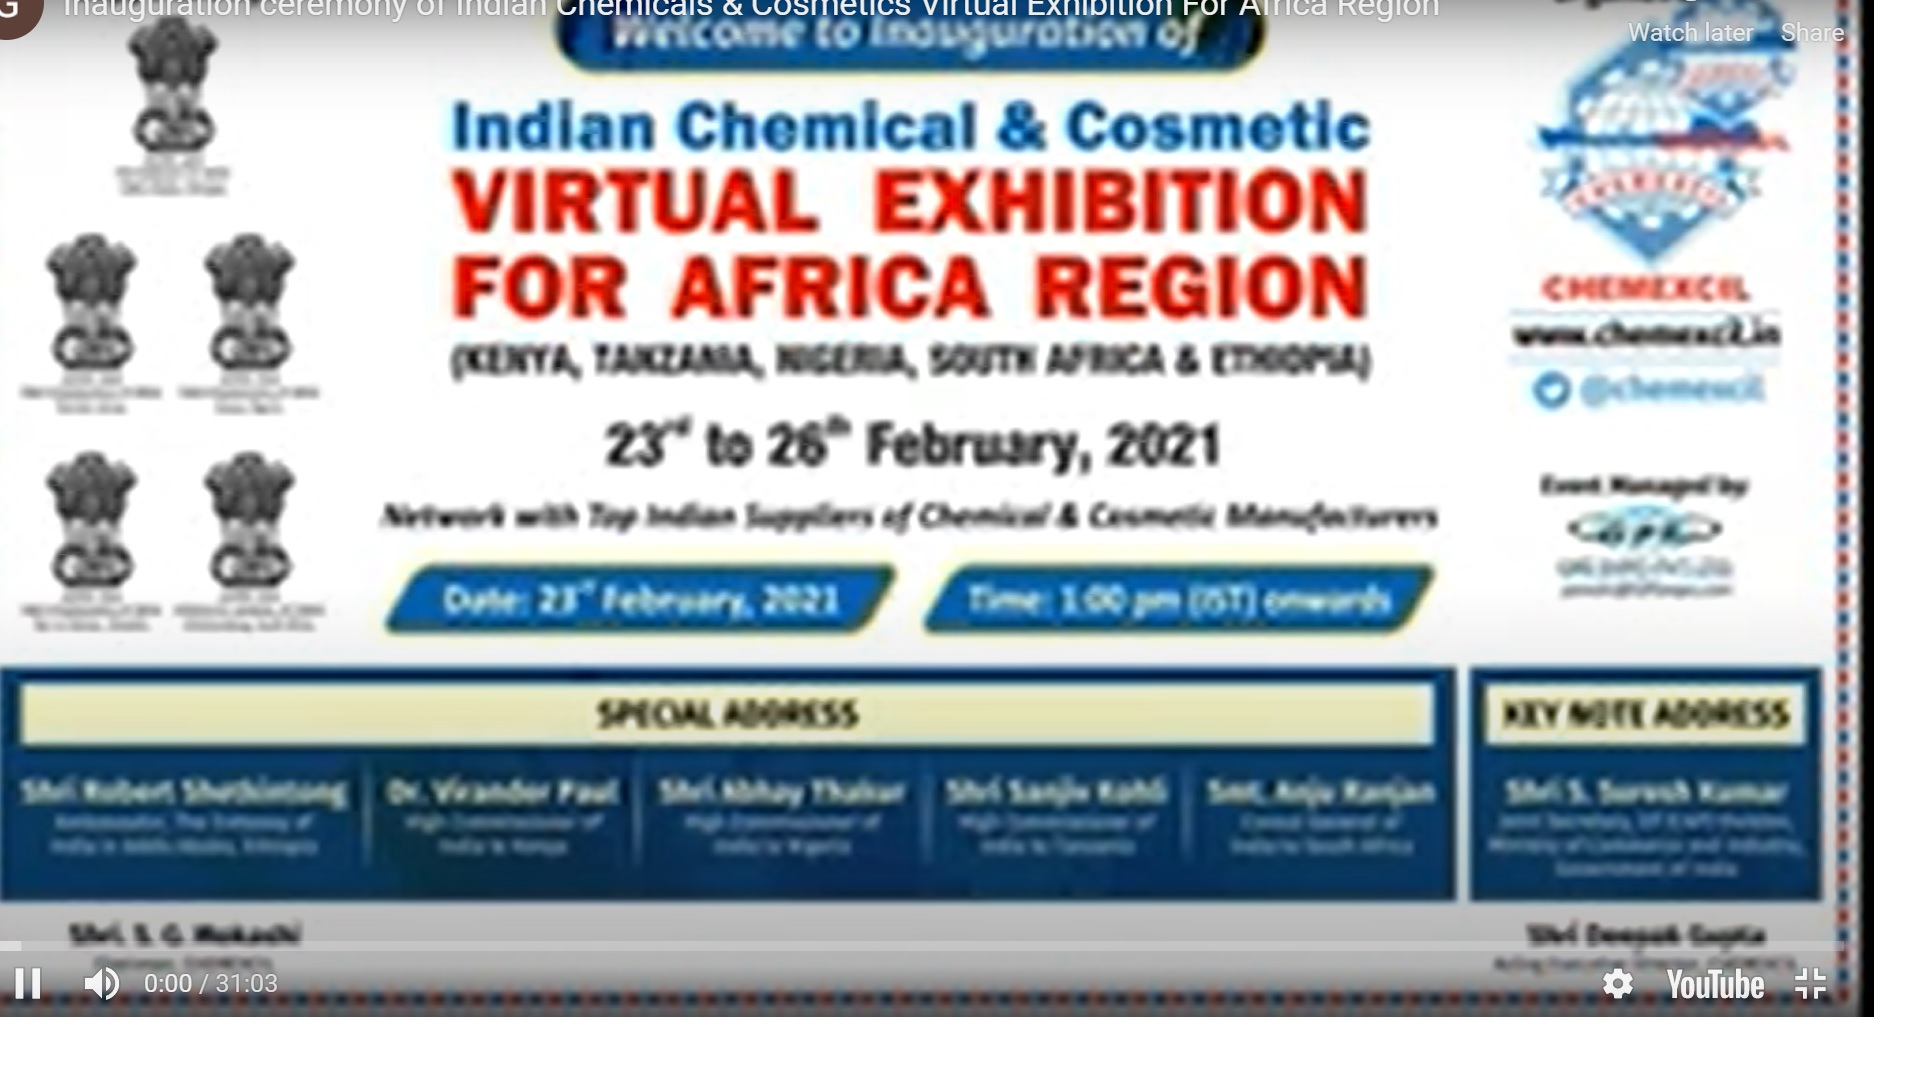 Inauguration ceremony of Chemexcil's Indian Chemical and Cosmetics Virtual Exhibition for Africa region (Kenya, Tanzania, Nigeria, South Africa and Ethiopia), 23rd – 26th Feb 2021